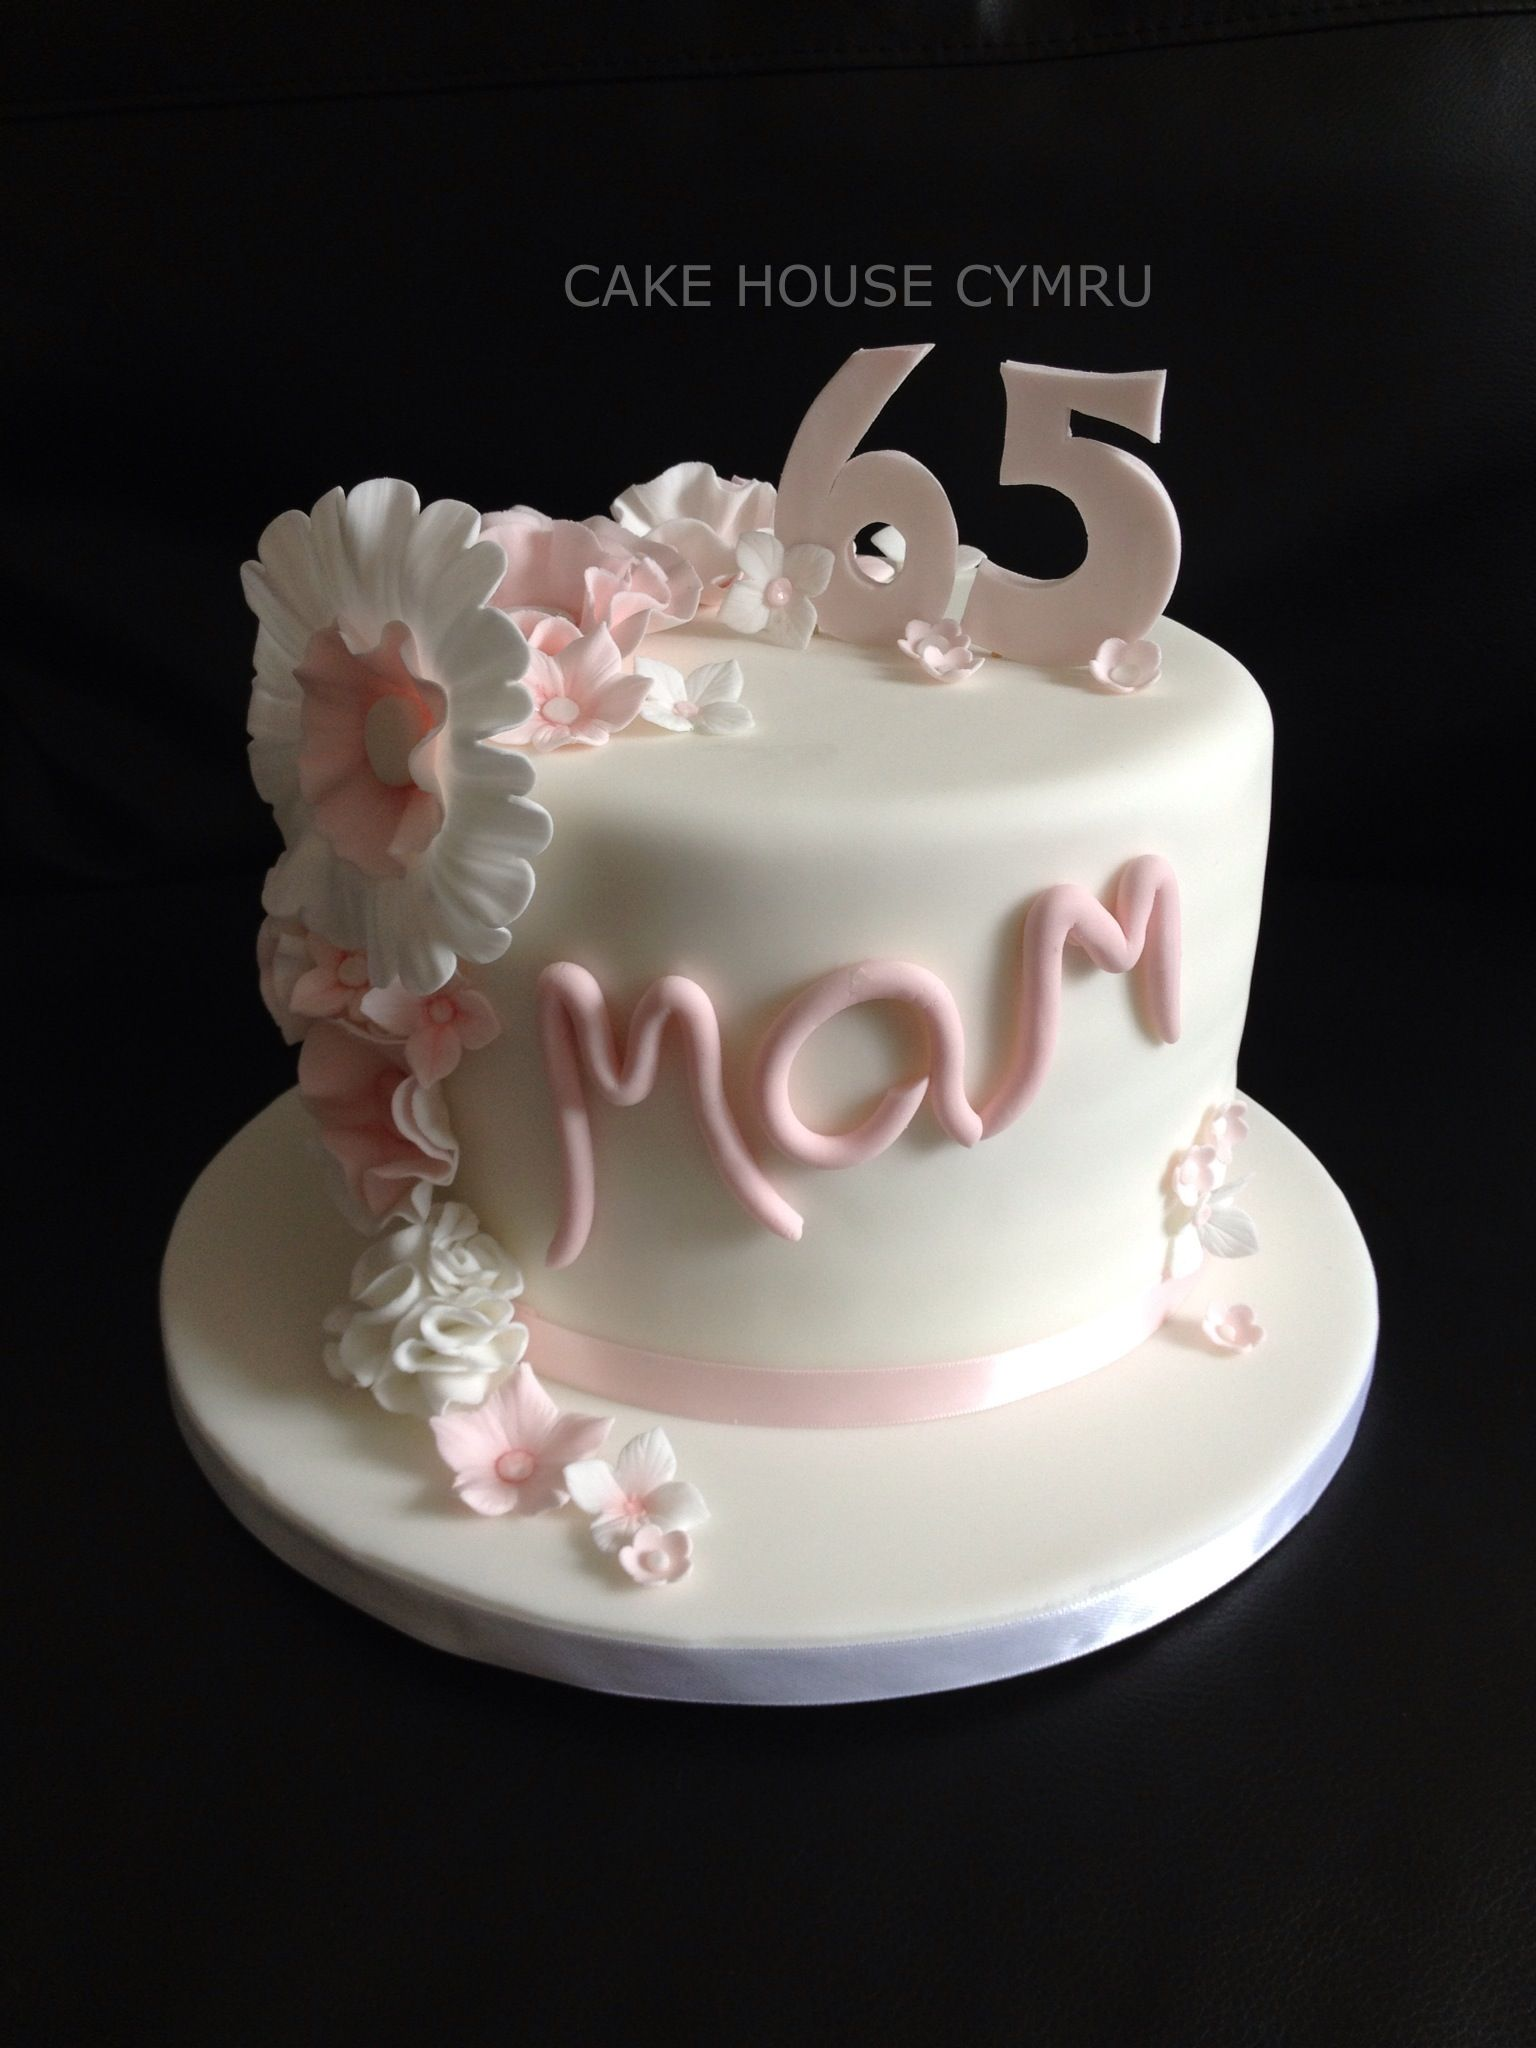 65th birthday cake craft ideas pinterest 65th for 65th birthday party decoration ideas